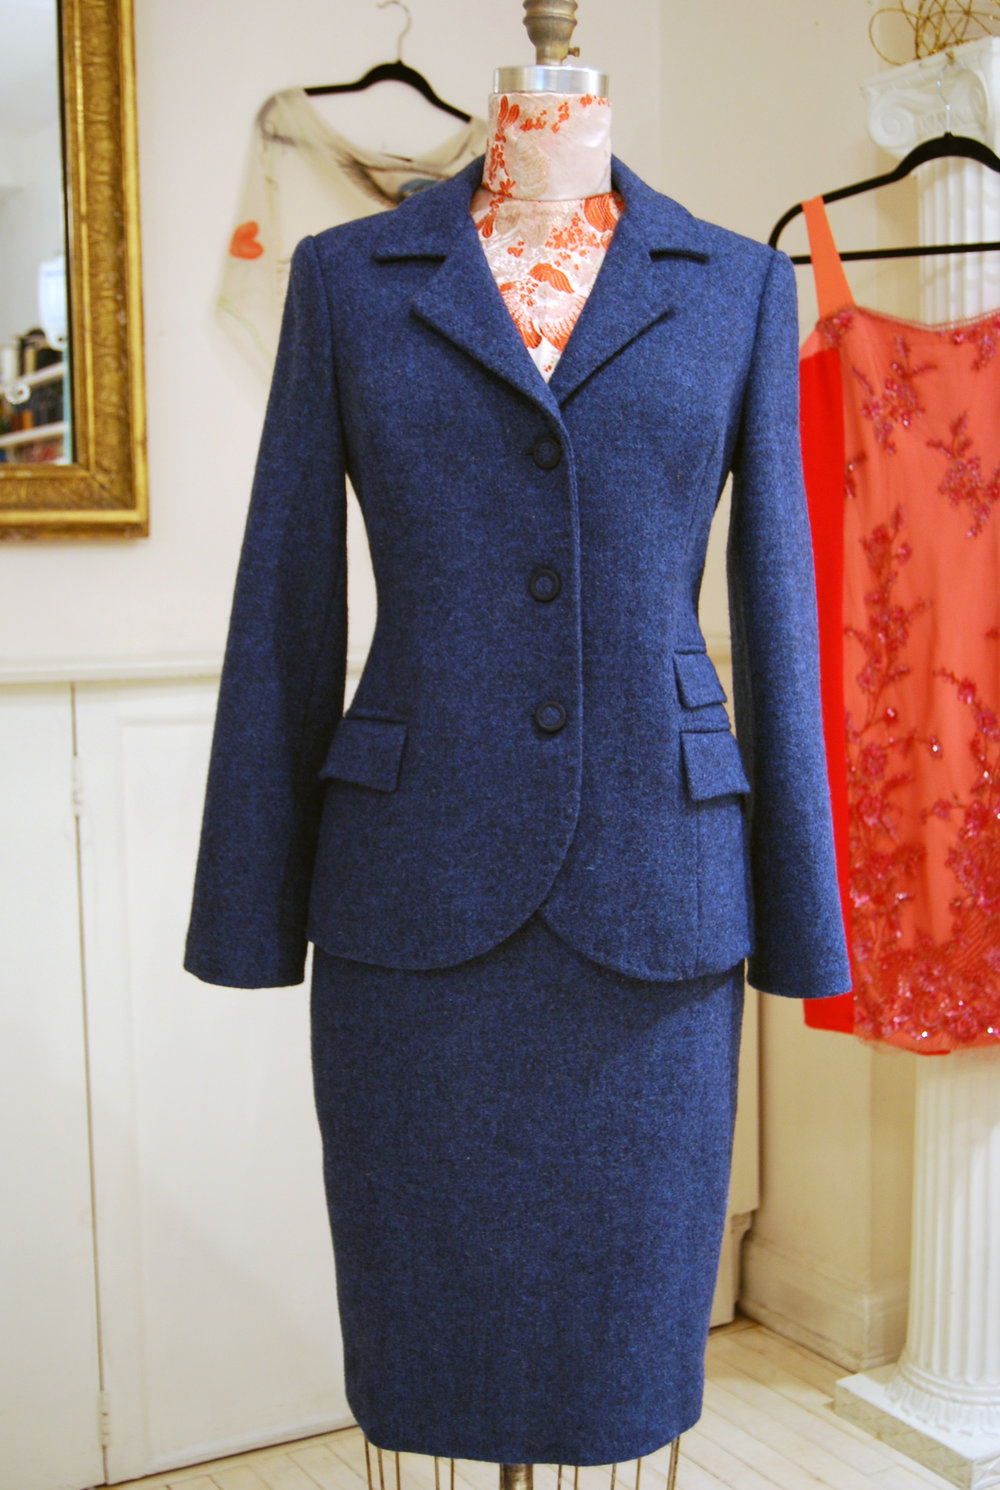 Harris Tweed Wool suit returning for a nip and tuck